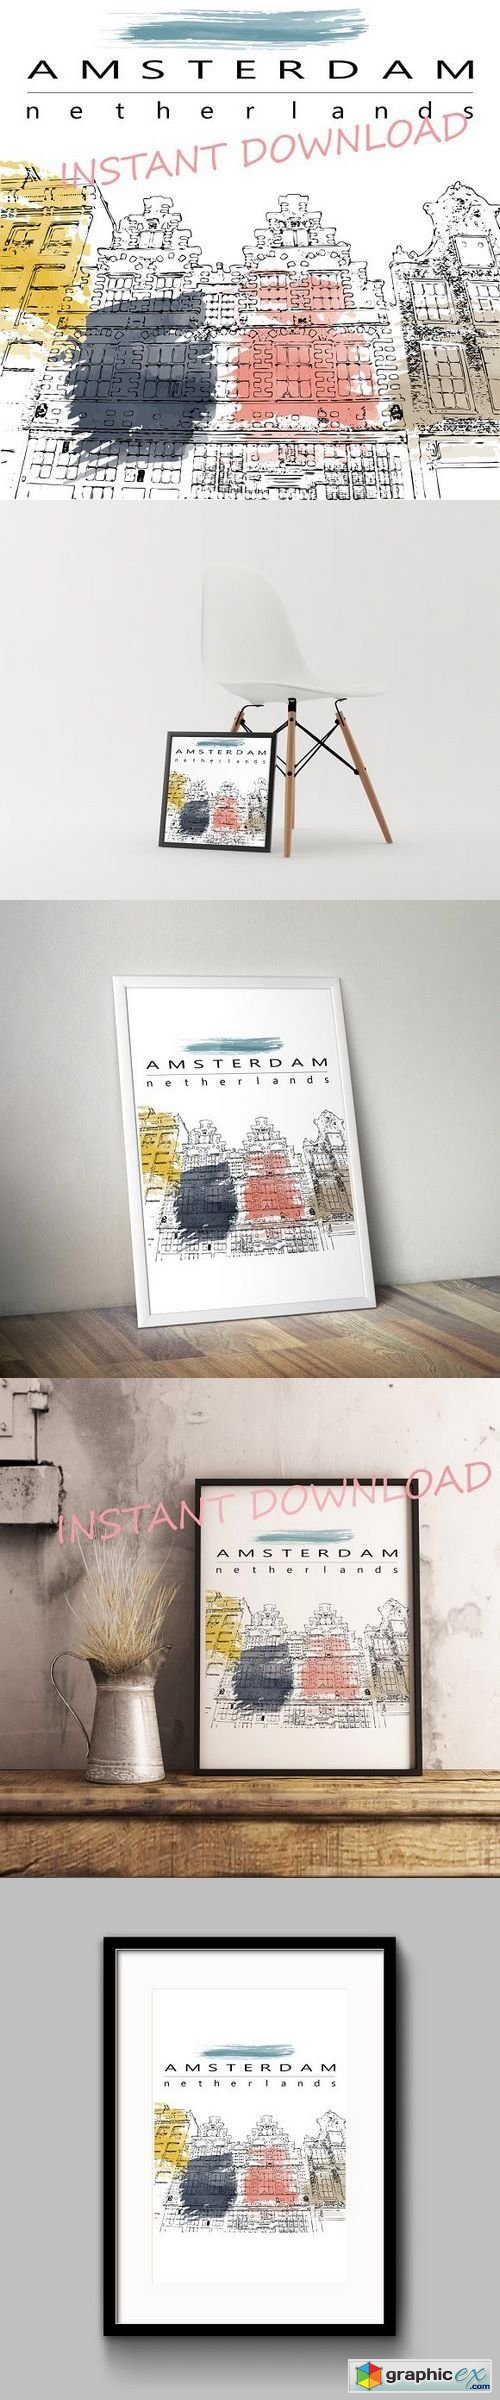 Amsterdam houses sketch illustration